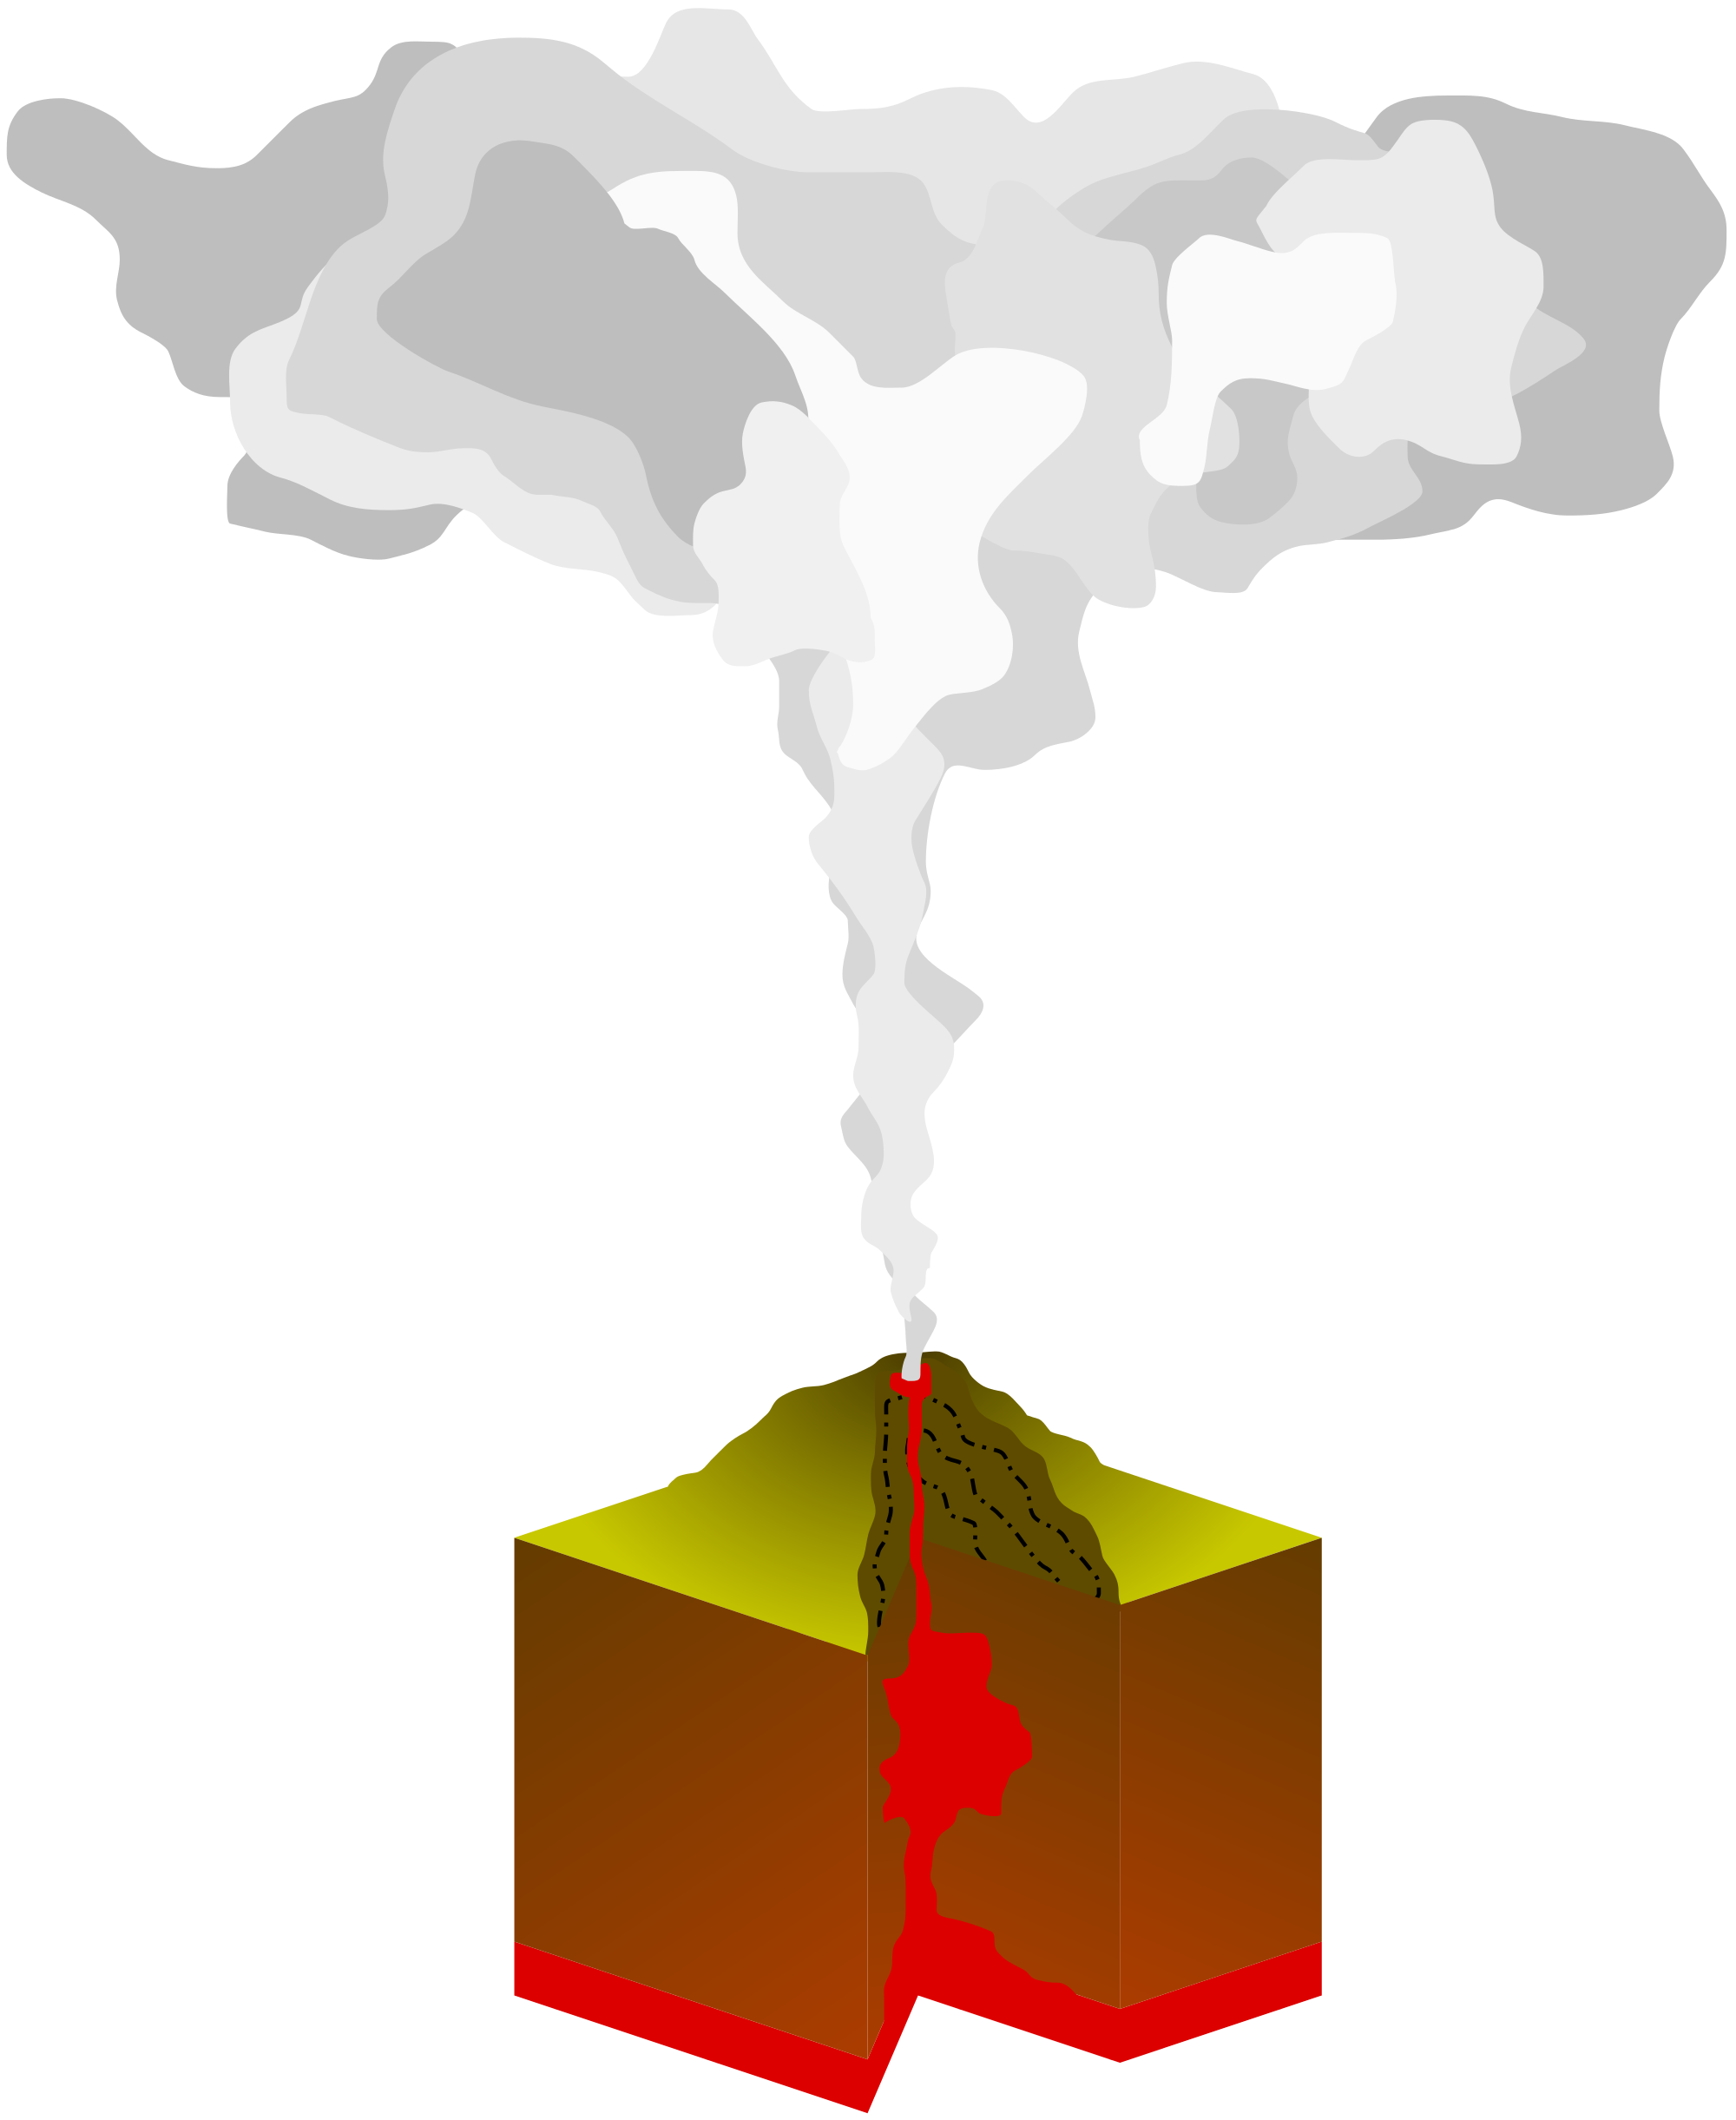 Volcano svg #10, Download drawings